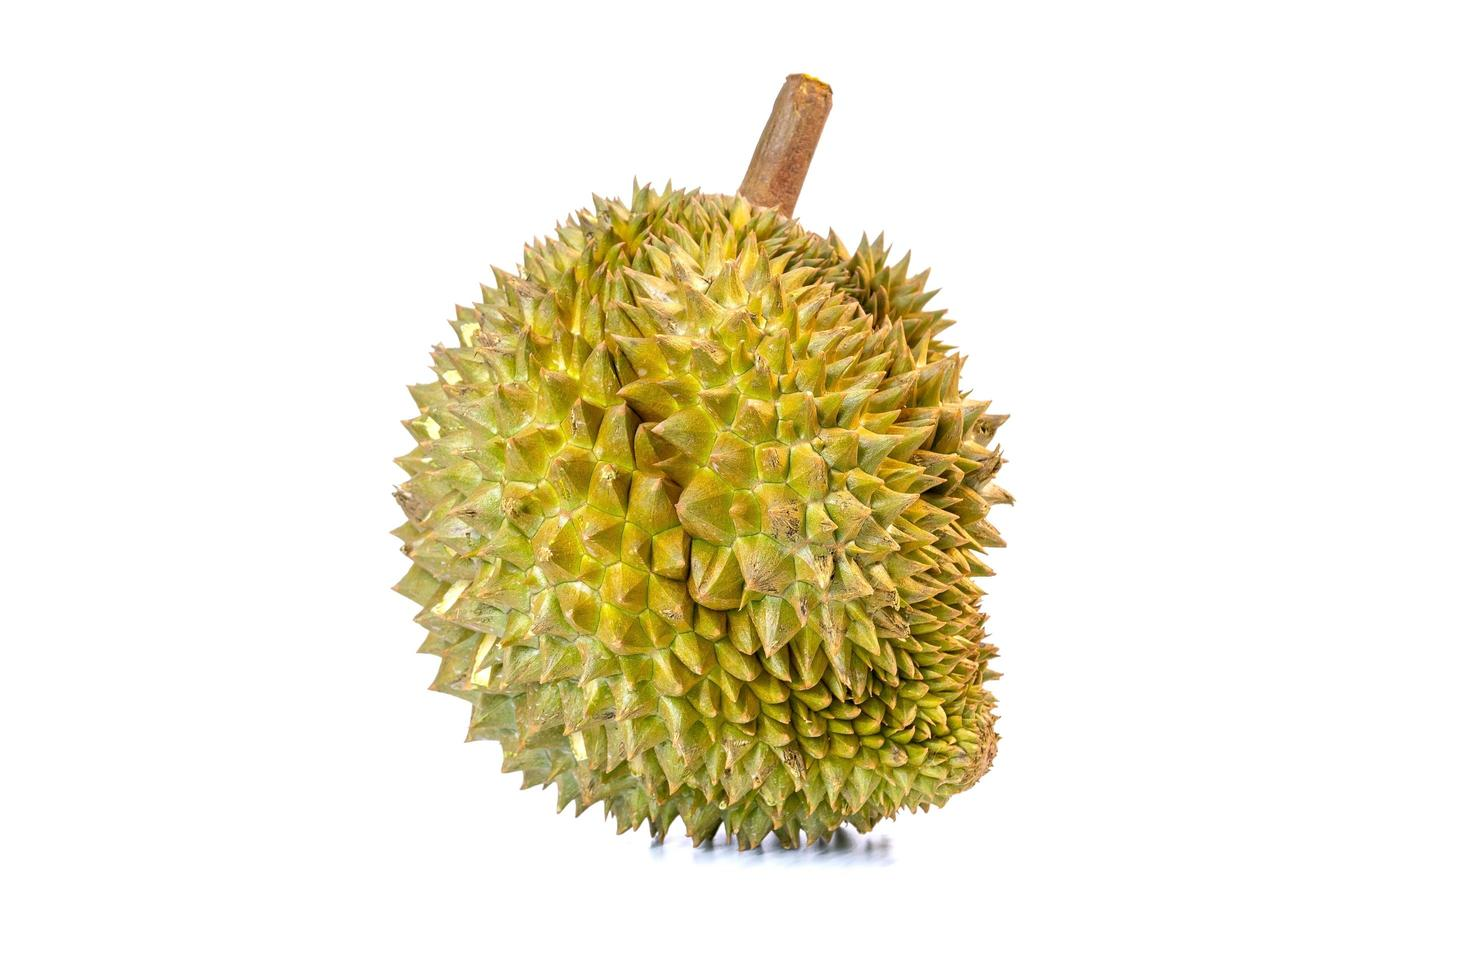 Close-up of a durian fruit photo